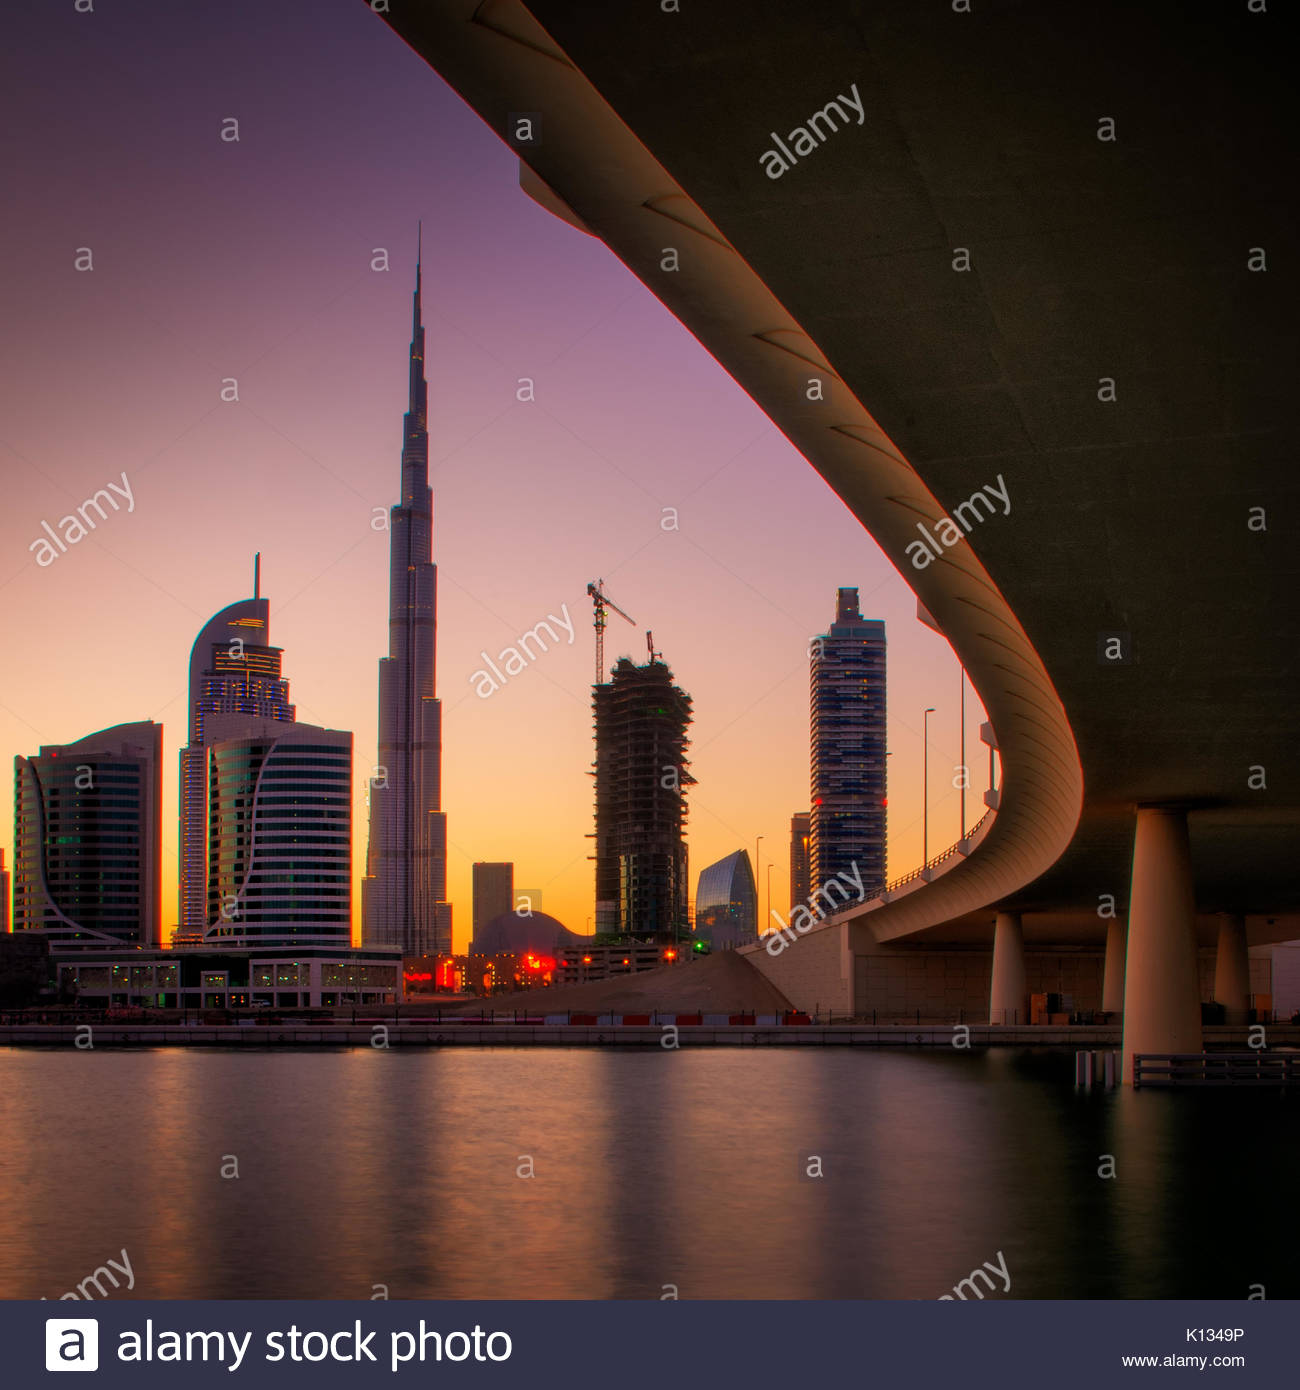 Fascinating reflection of tallest skyscrapers in Business Bay district during colorful sunset near amazing bridge. - Stock Image